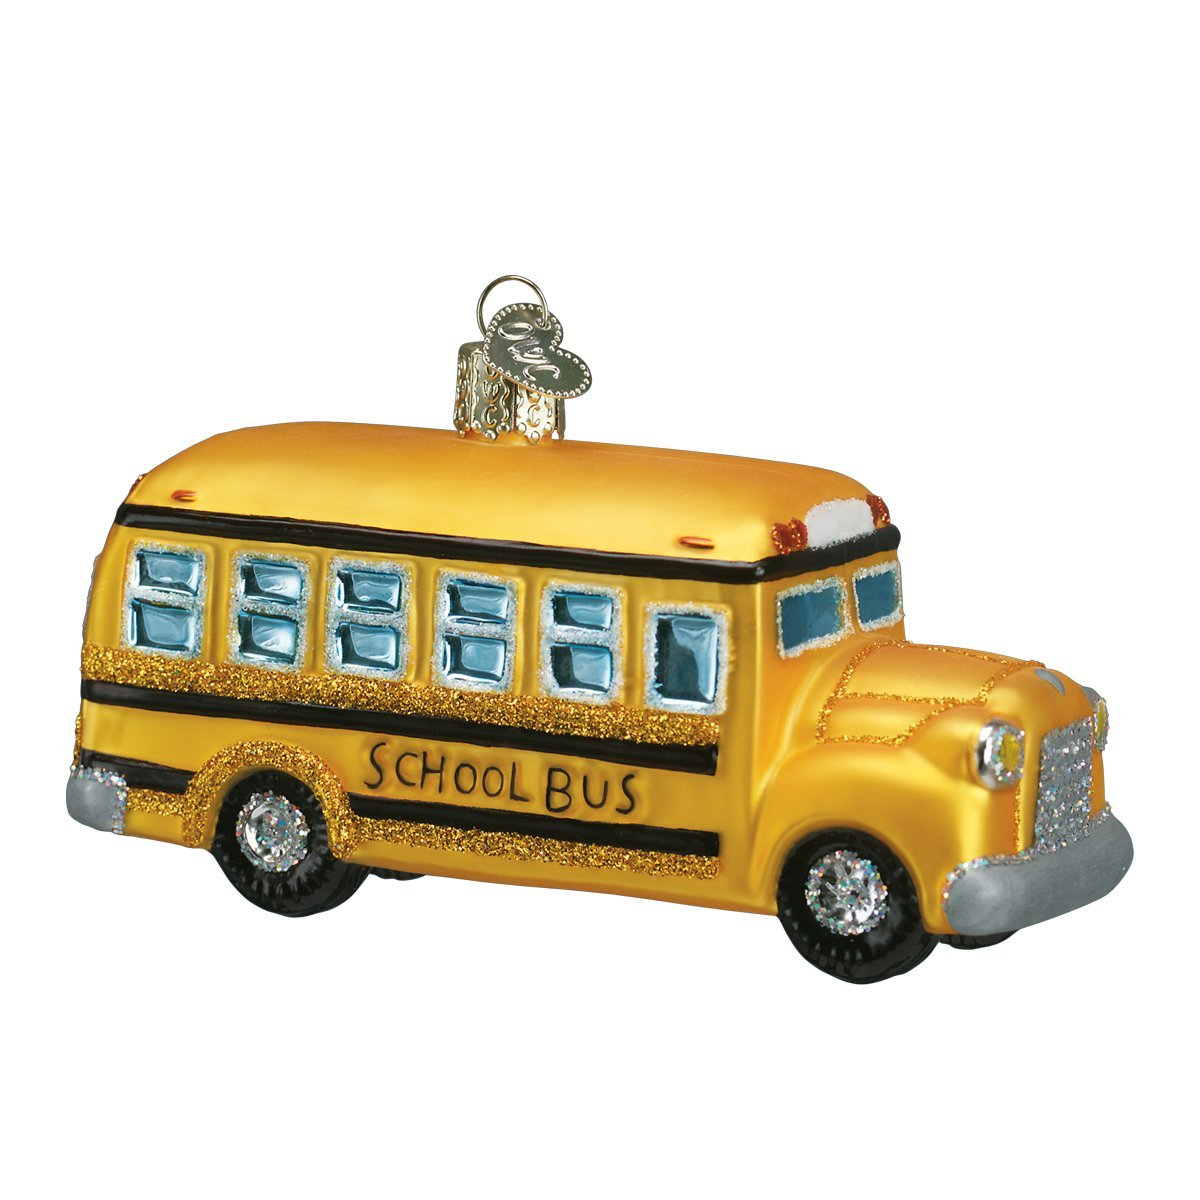 Old World Christmas Ornaments: School Bus Glass Blown Ornaments for Christmas Tree